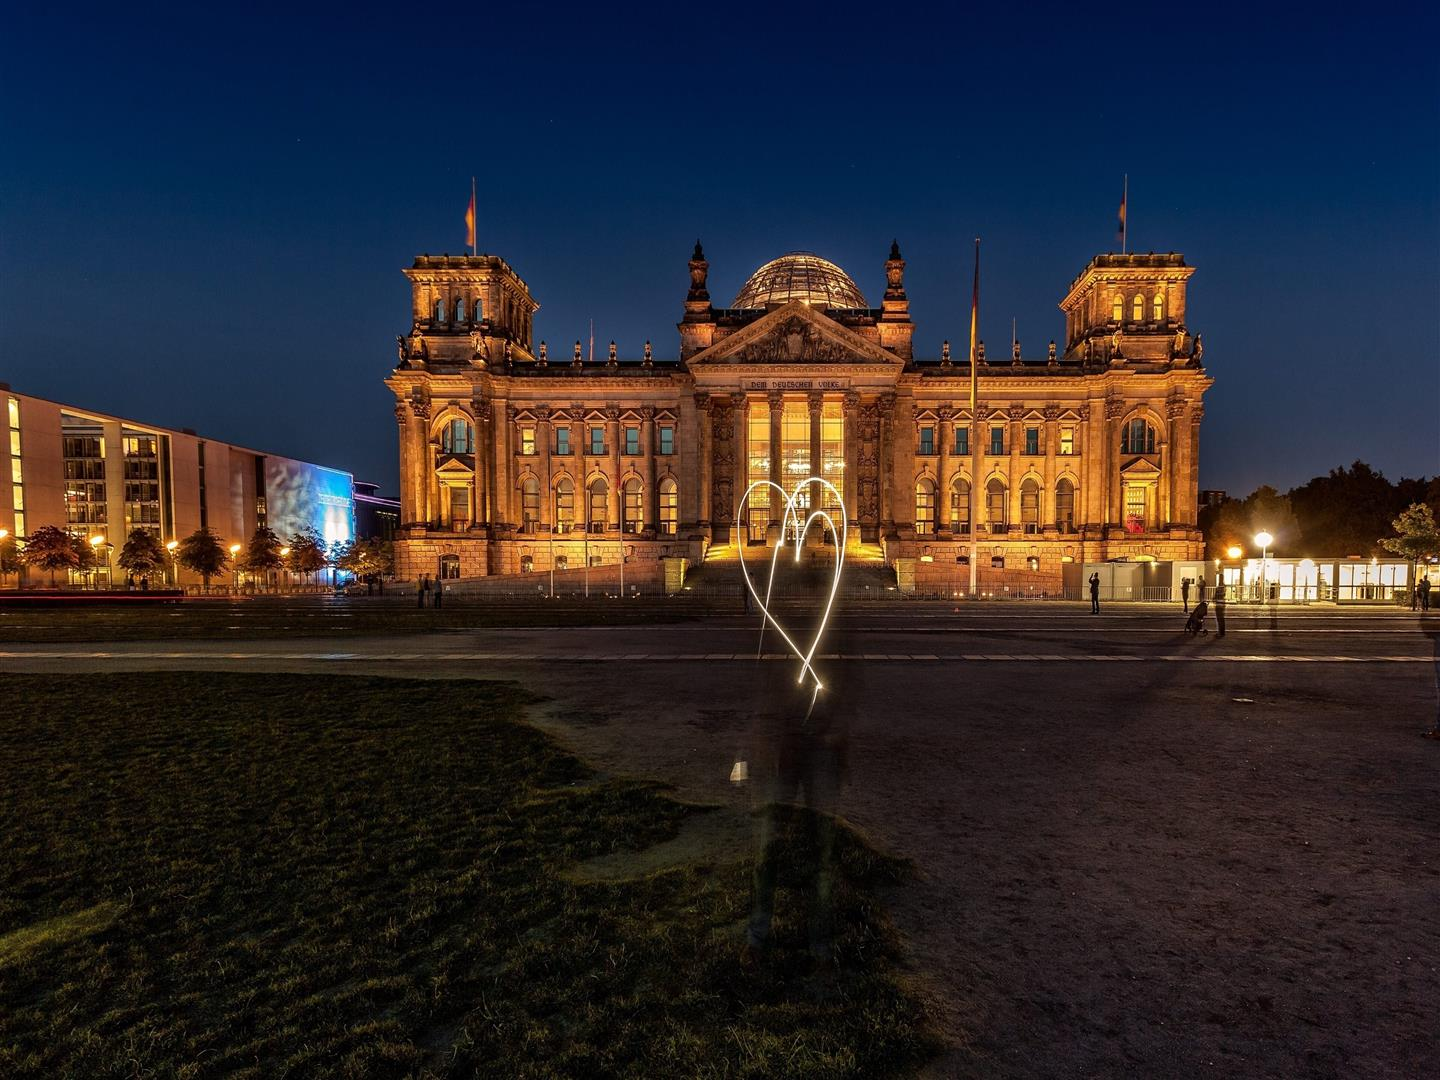 1440x1080 Reichstag Building at Night in Berlin Germany Wallpaper